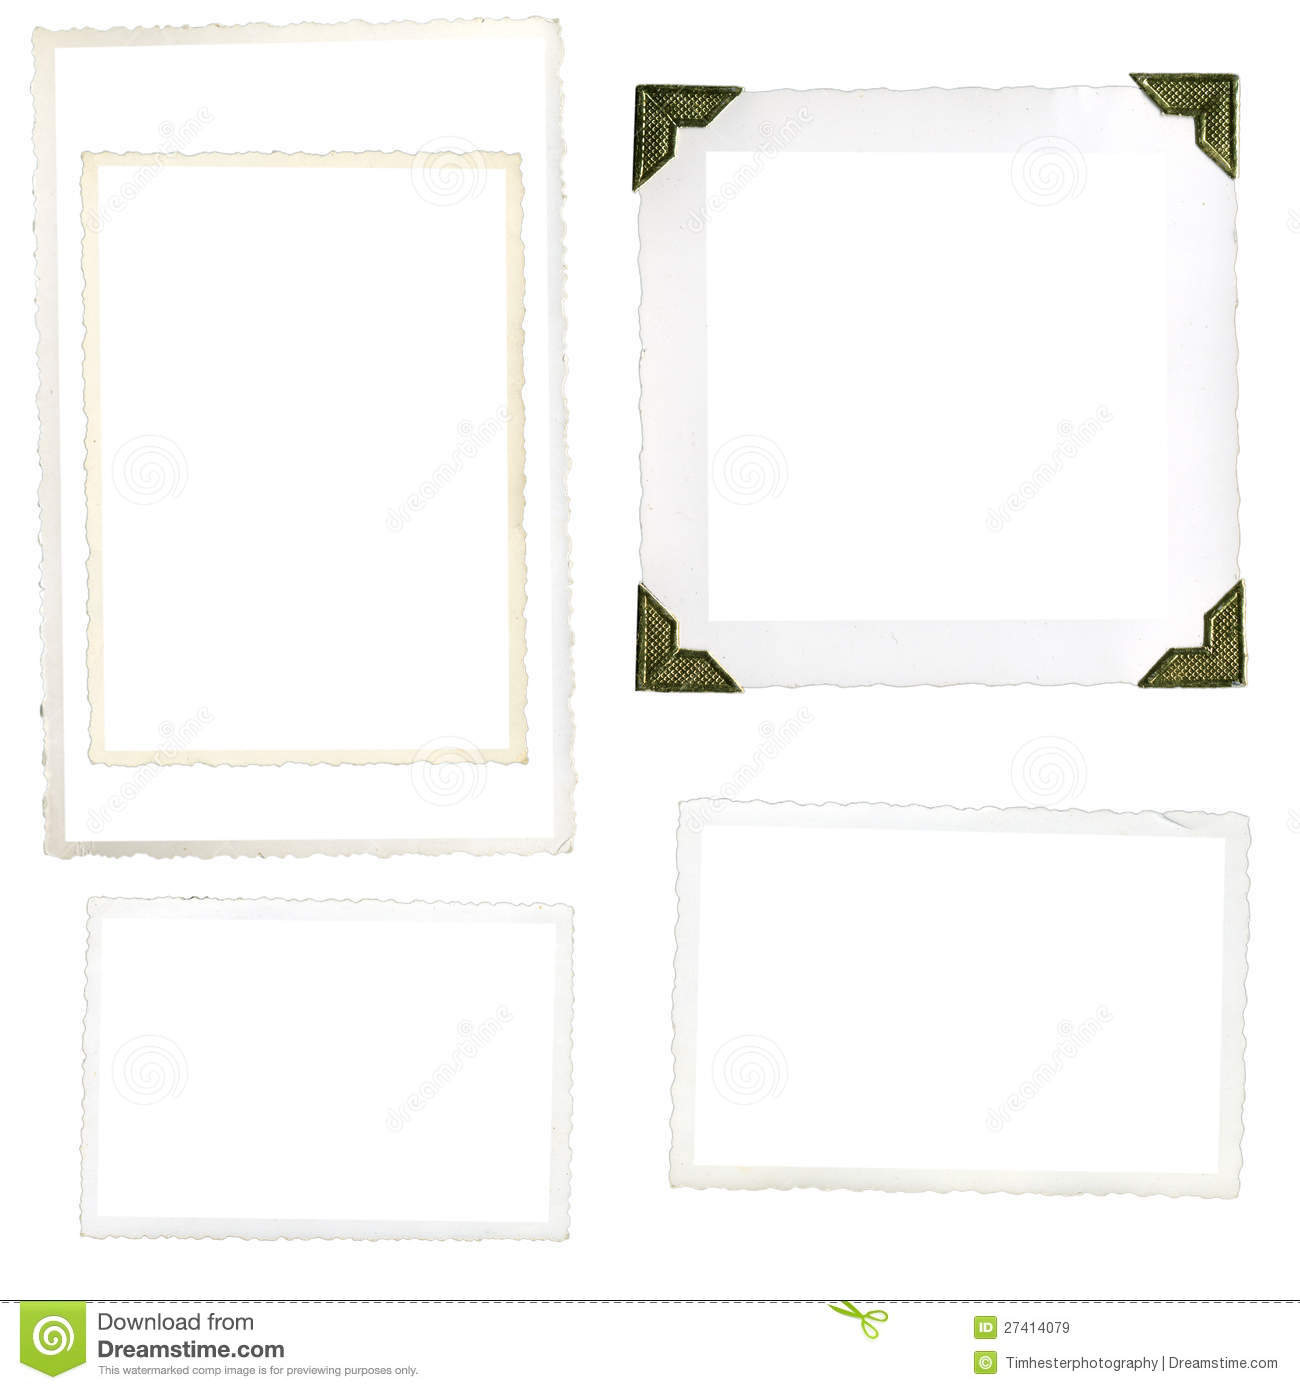 how to join picture frame corners